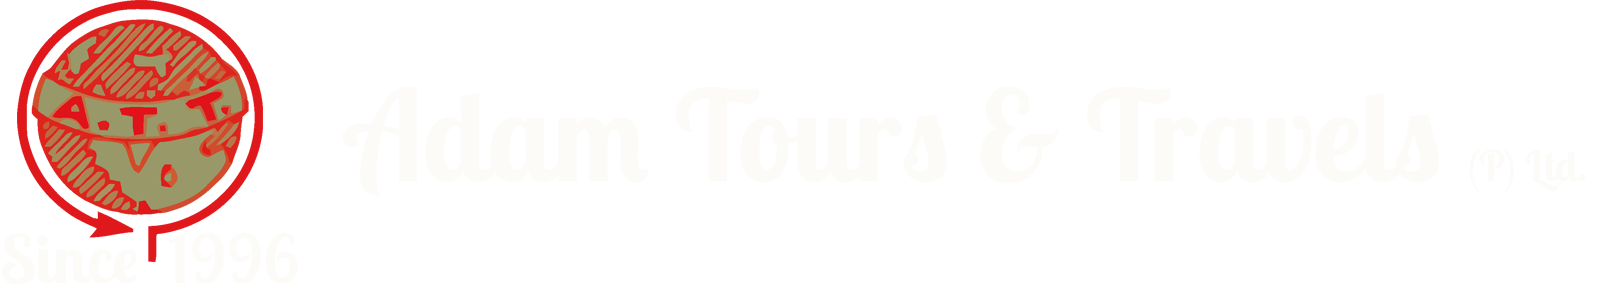 Adam Tours & Travel Pvt. Ltd.